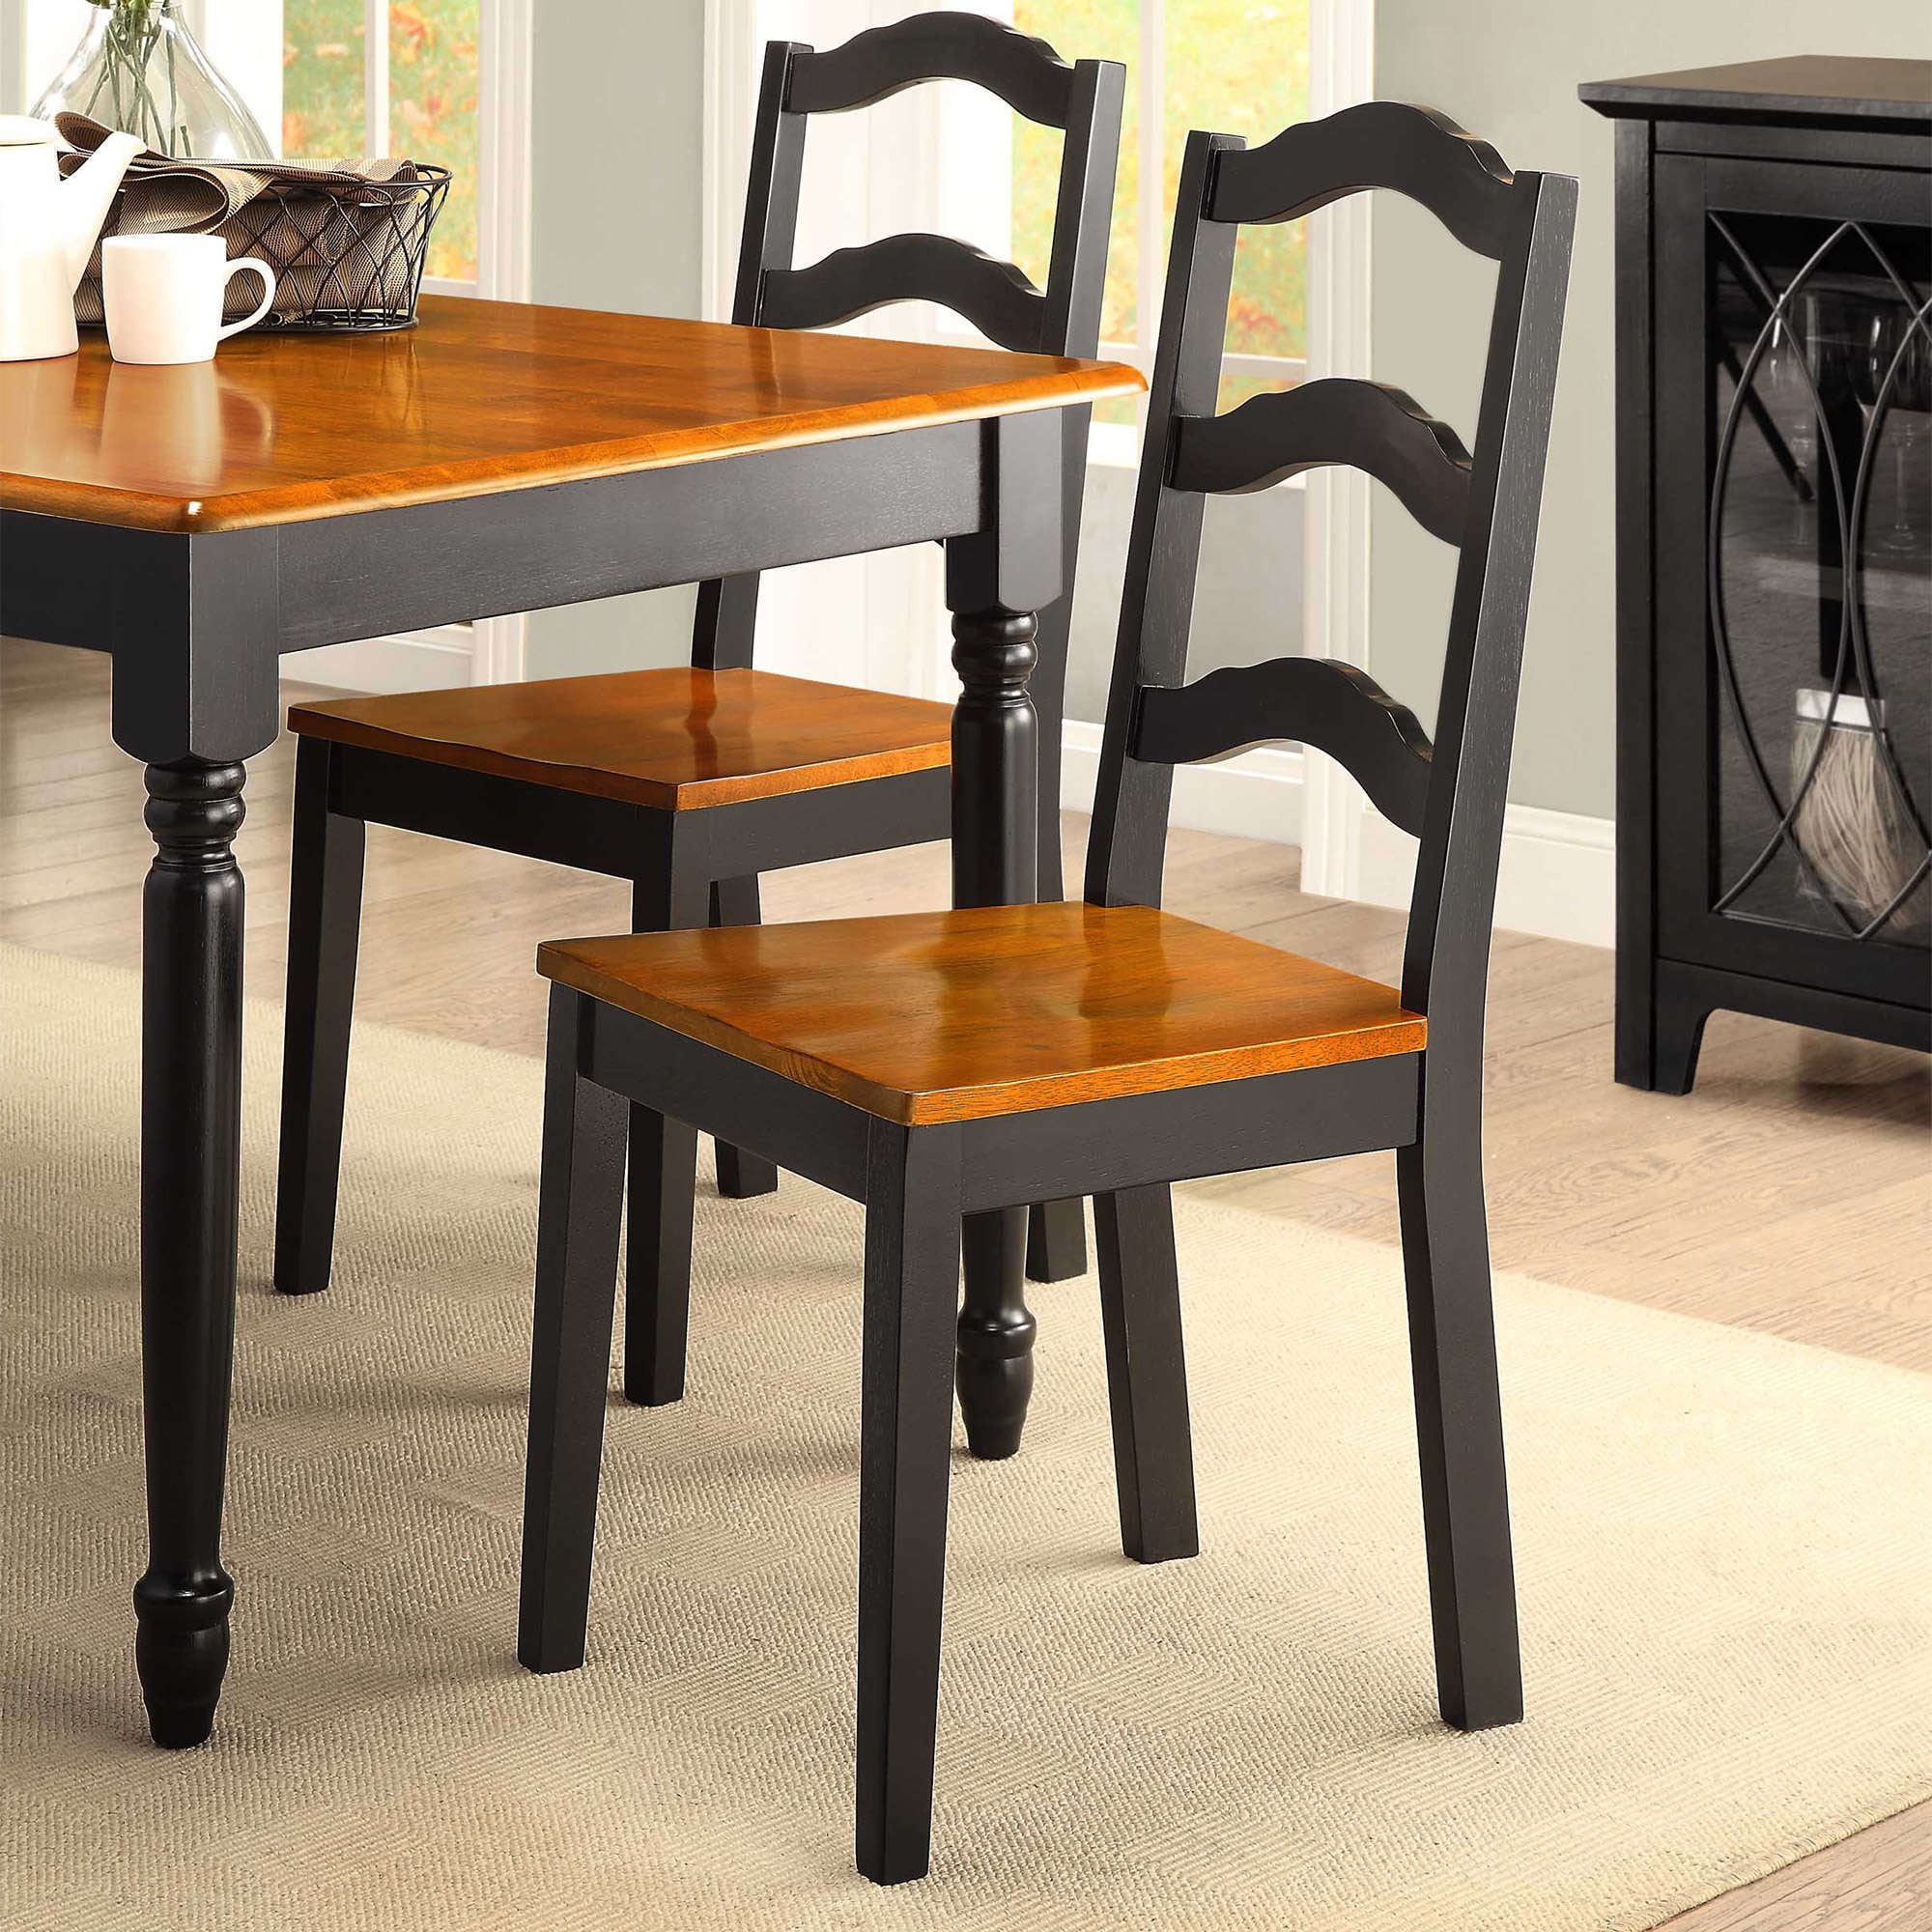 Better Homes and Gardens Autumn Lane Ladder Back Dining Chairs, Set of 2, Black and Oak by